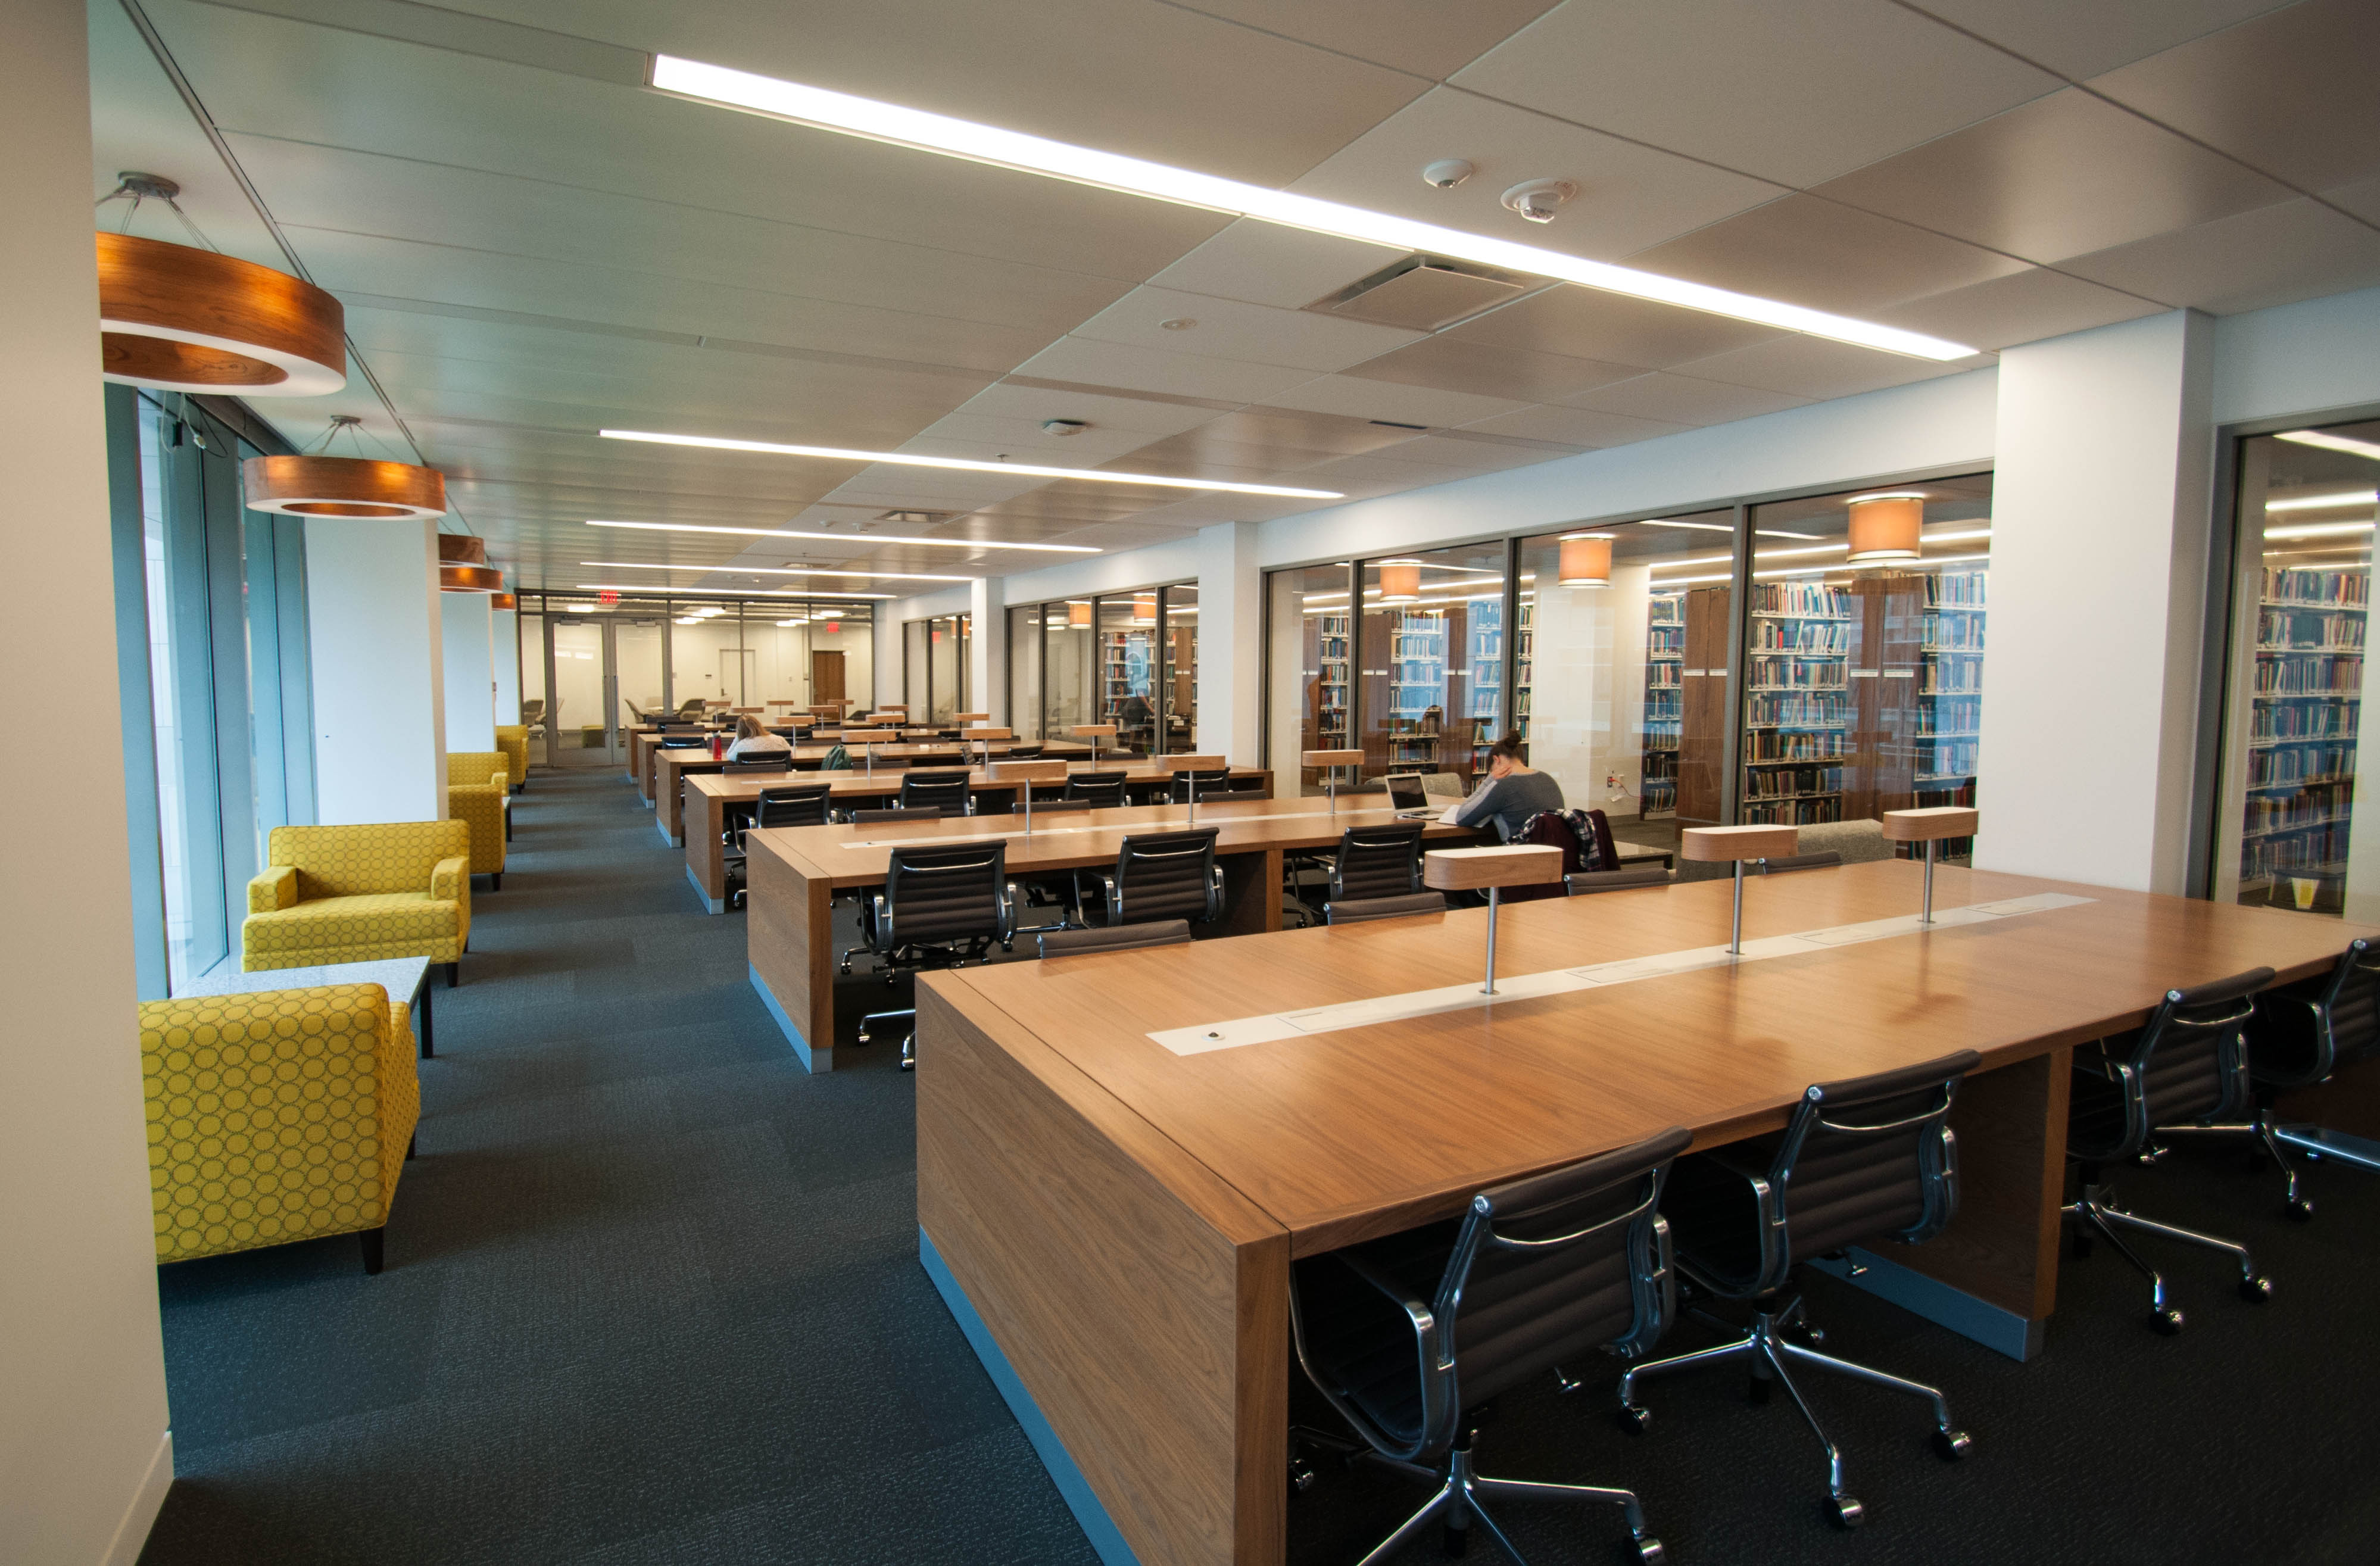 Wcl Library Rooms